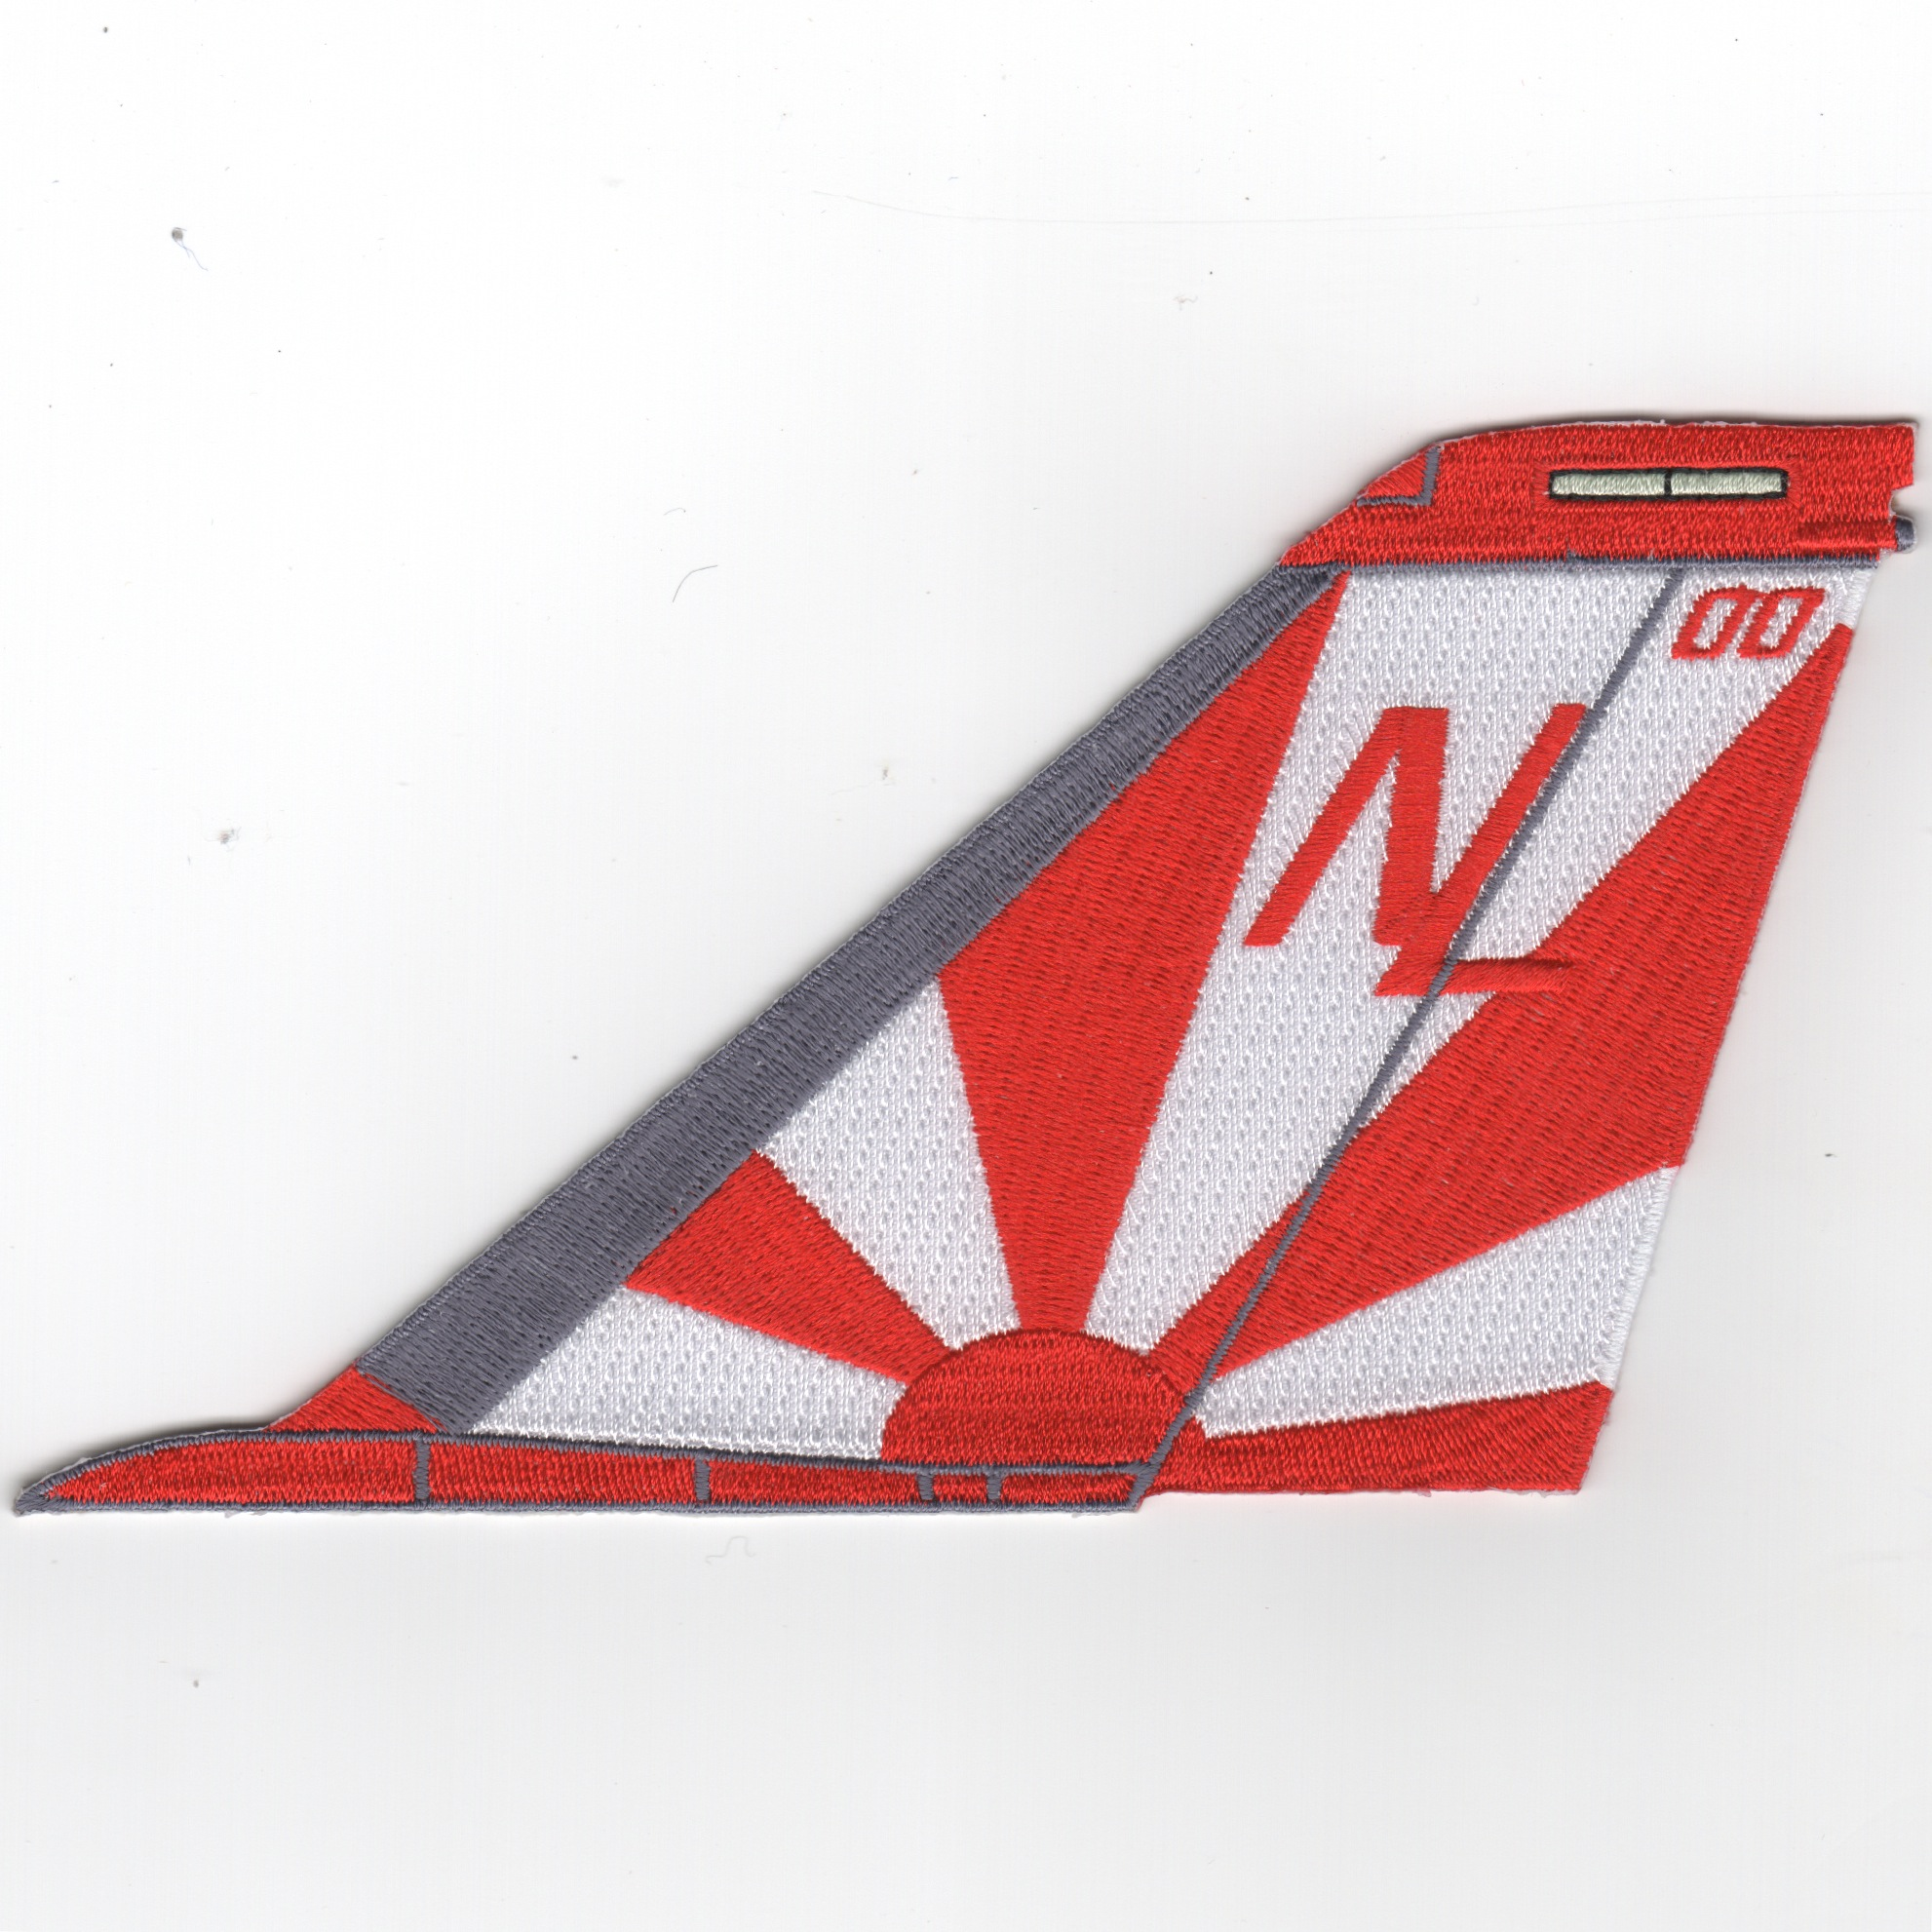 VF-111 F-14 Tailfin (No Text/Red-White)